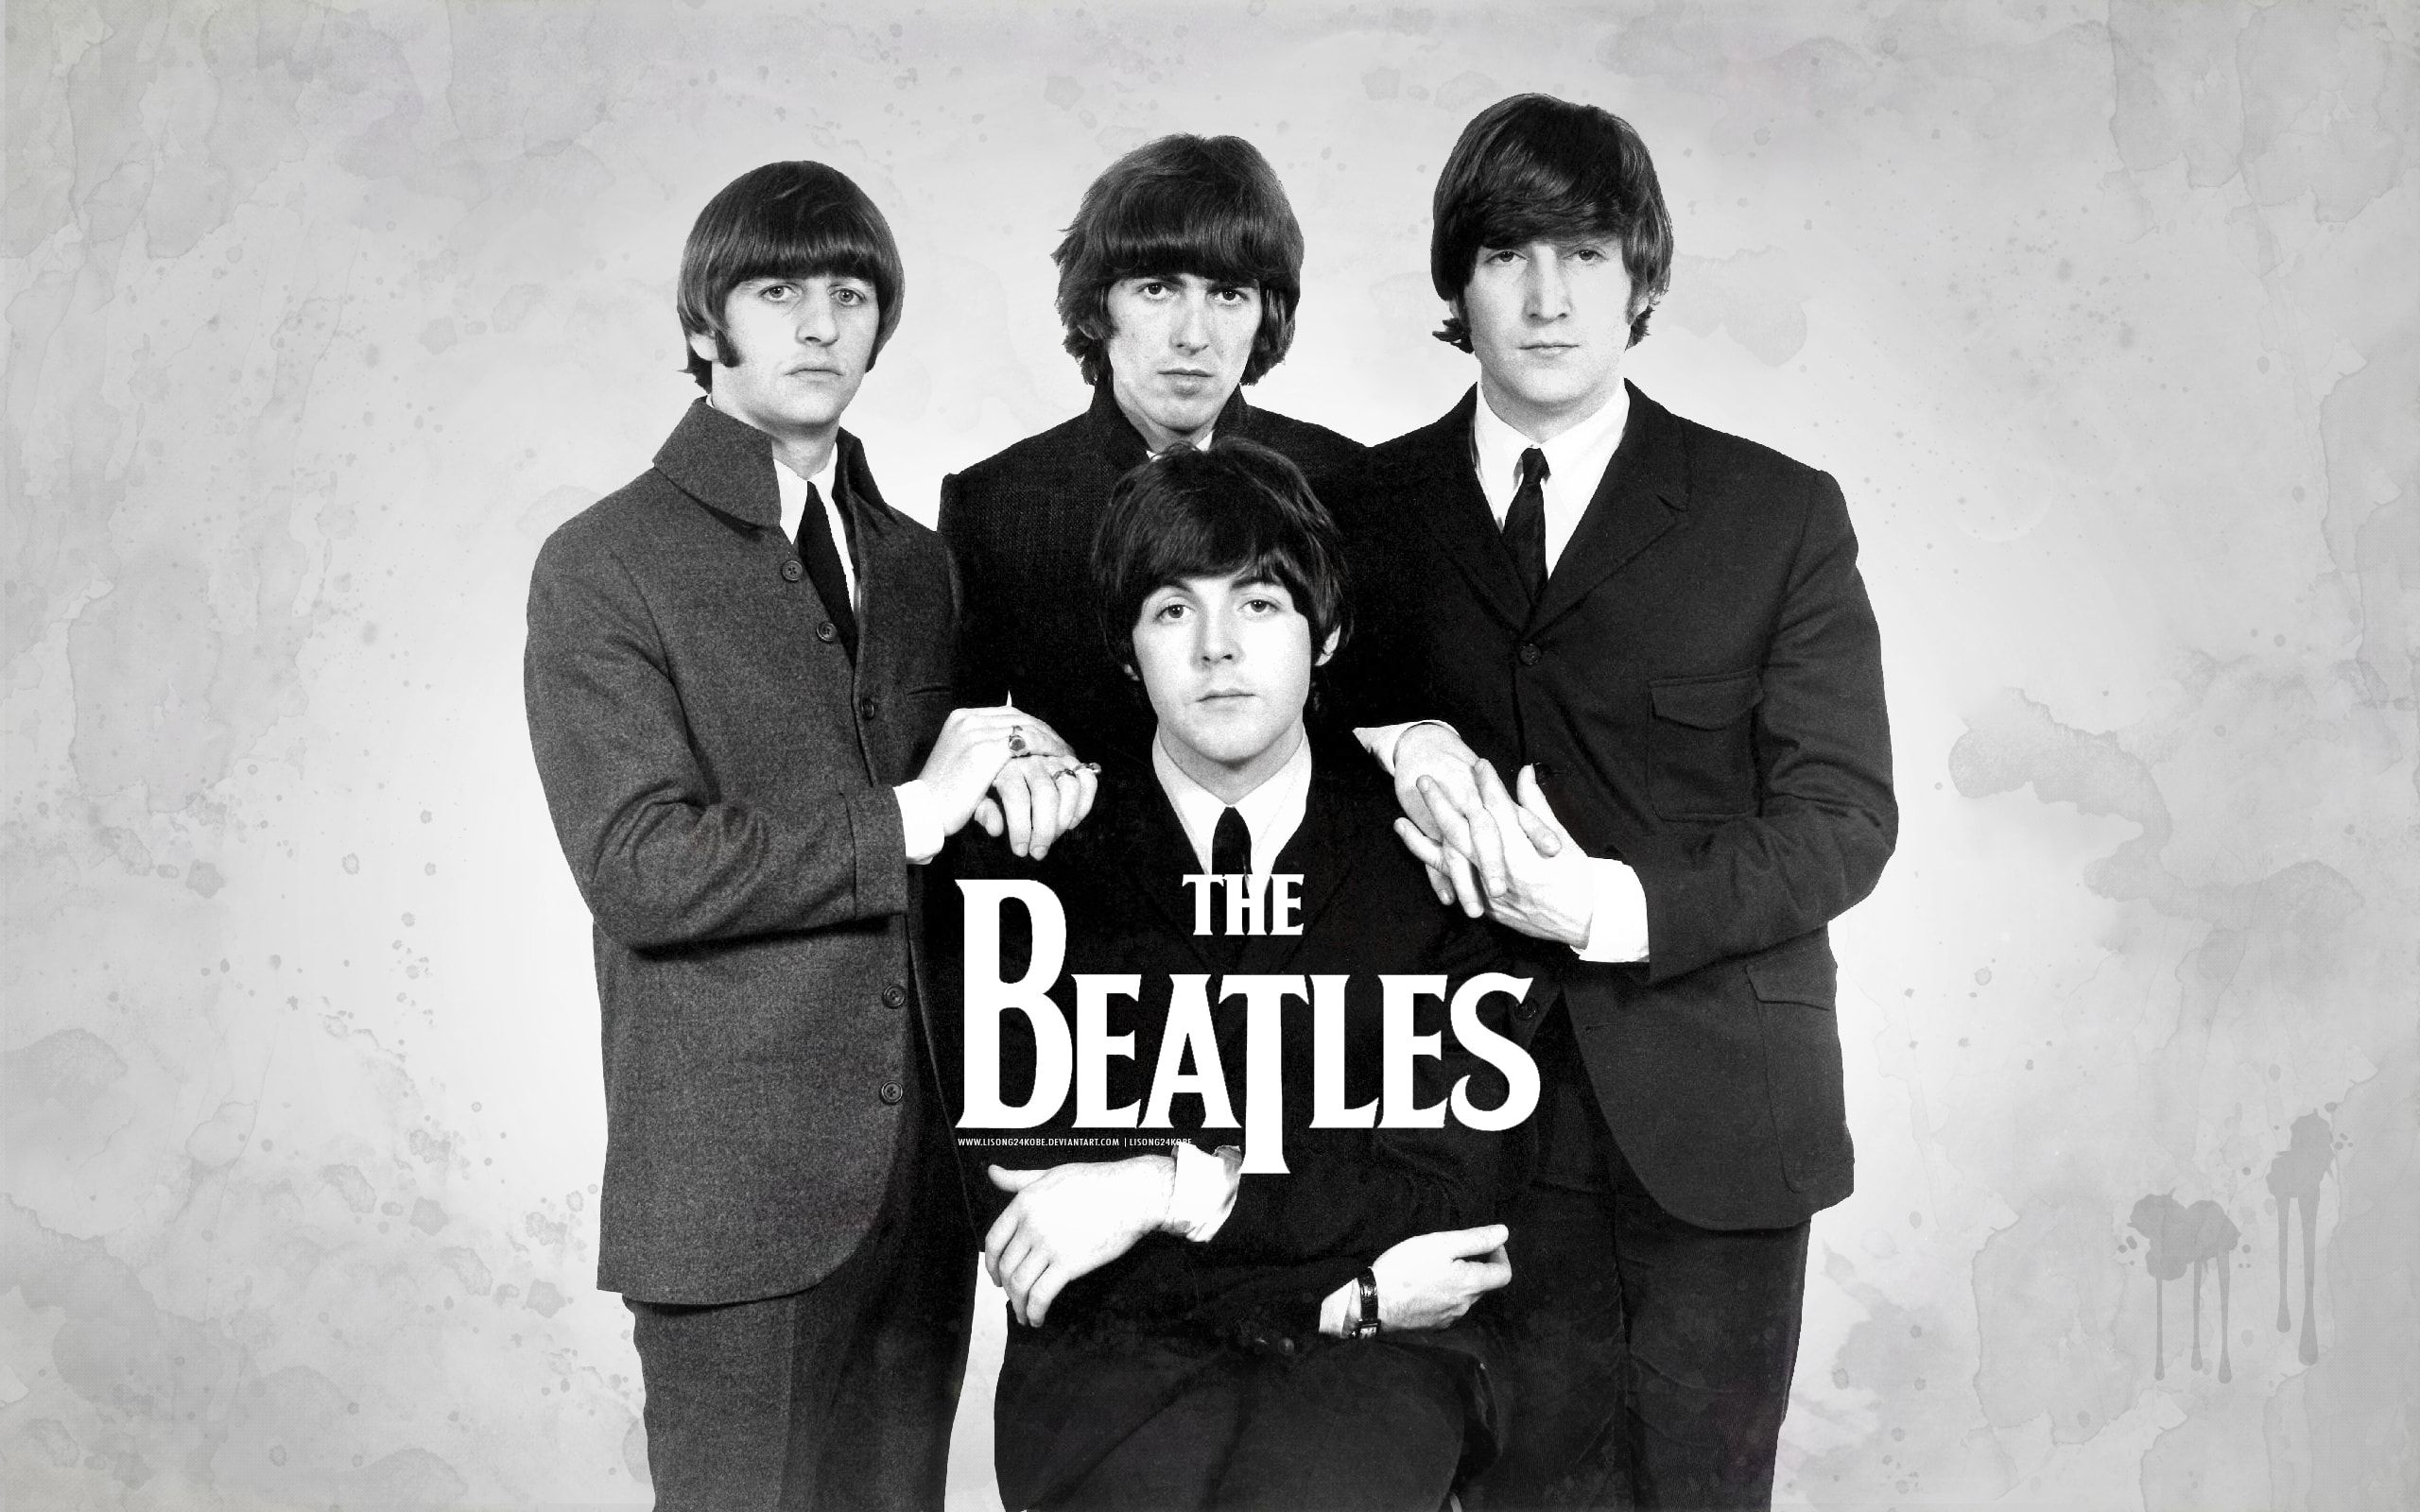 The best beatles wallpapers hd wallpapers pinterest the best beatles wallpapers voltagebd Choice Image